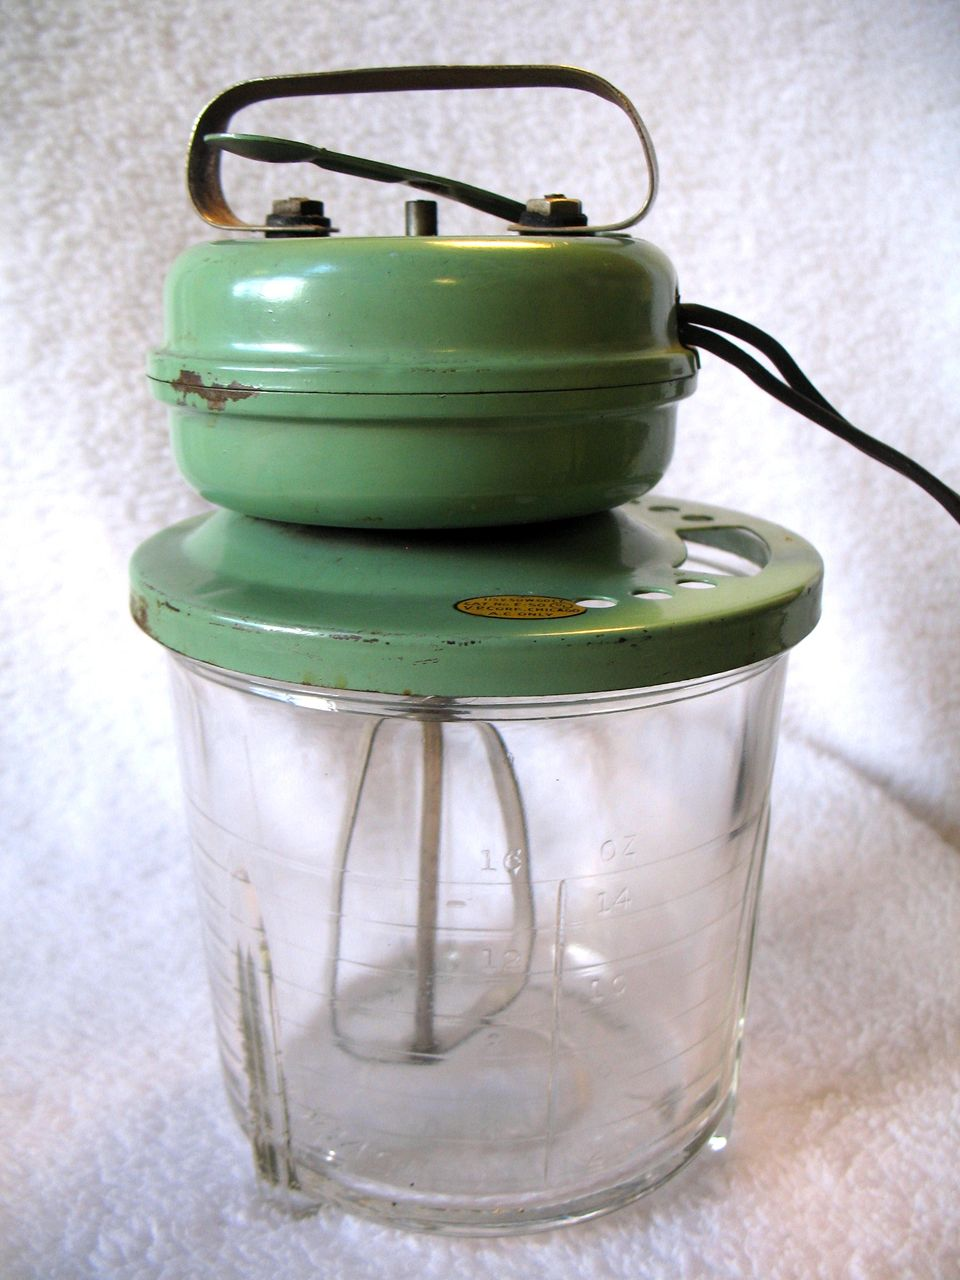 Vintage 1930's Vidrio Electric Mixer Beater Churn Egg Cream Mayonnaise